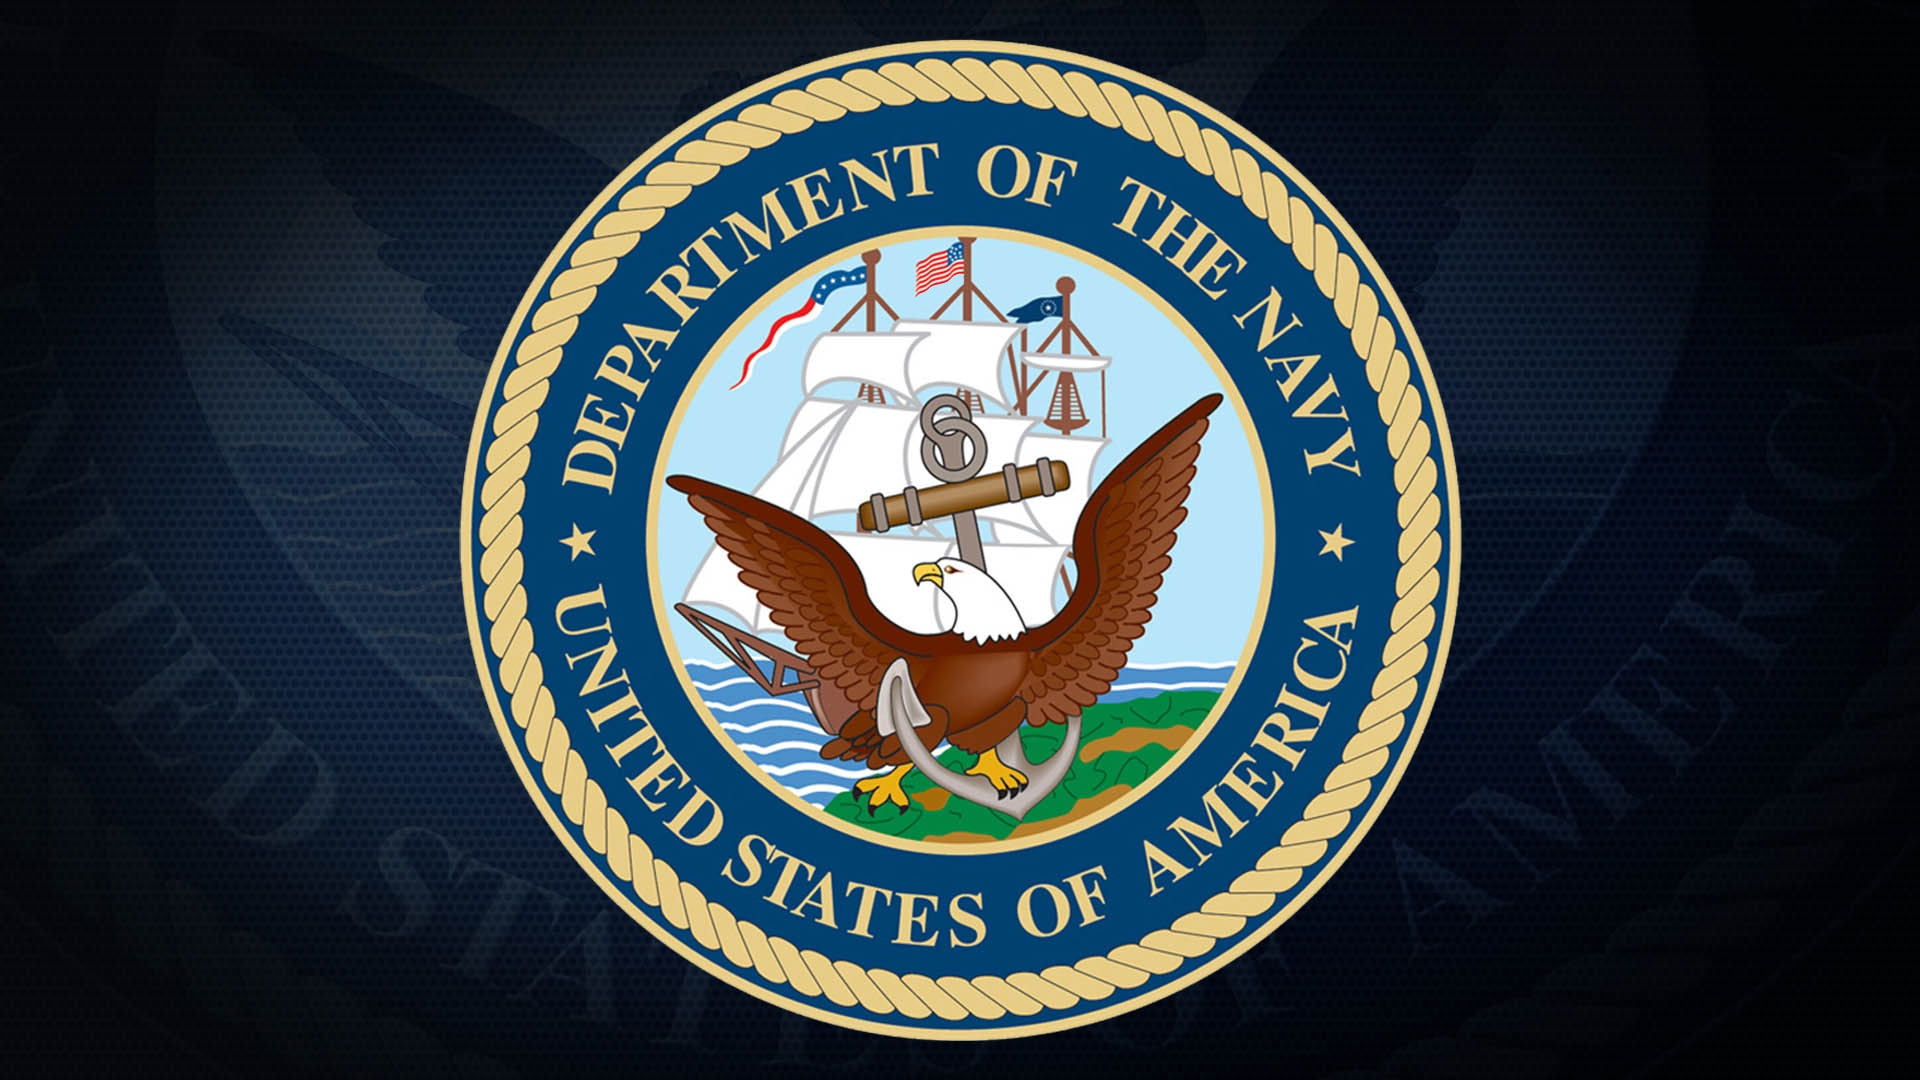 Message From 77th Secretary of the Navy